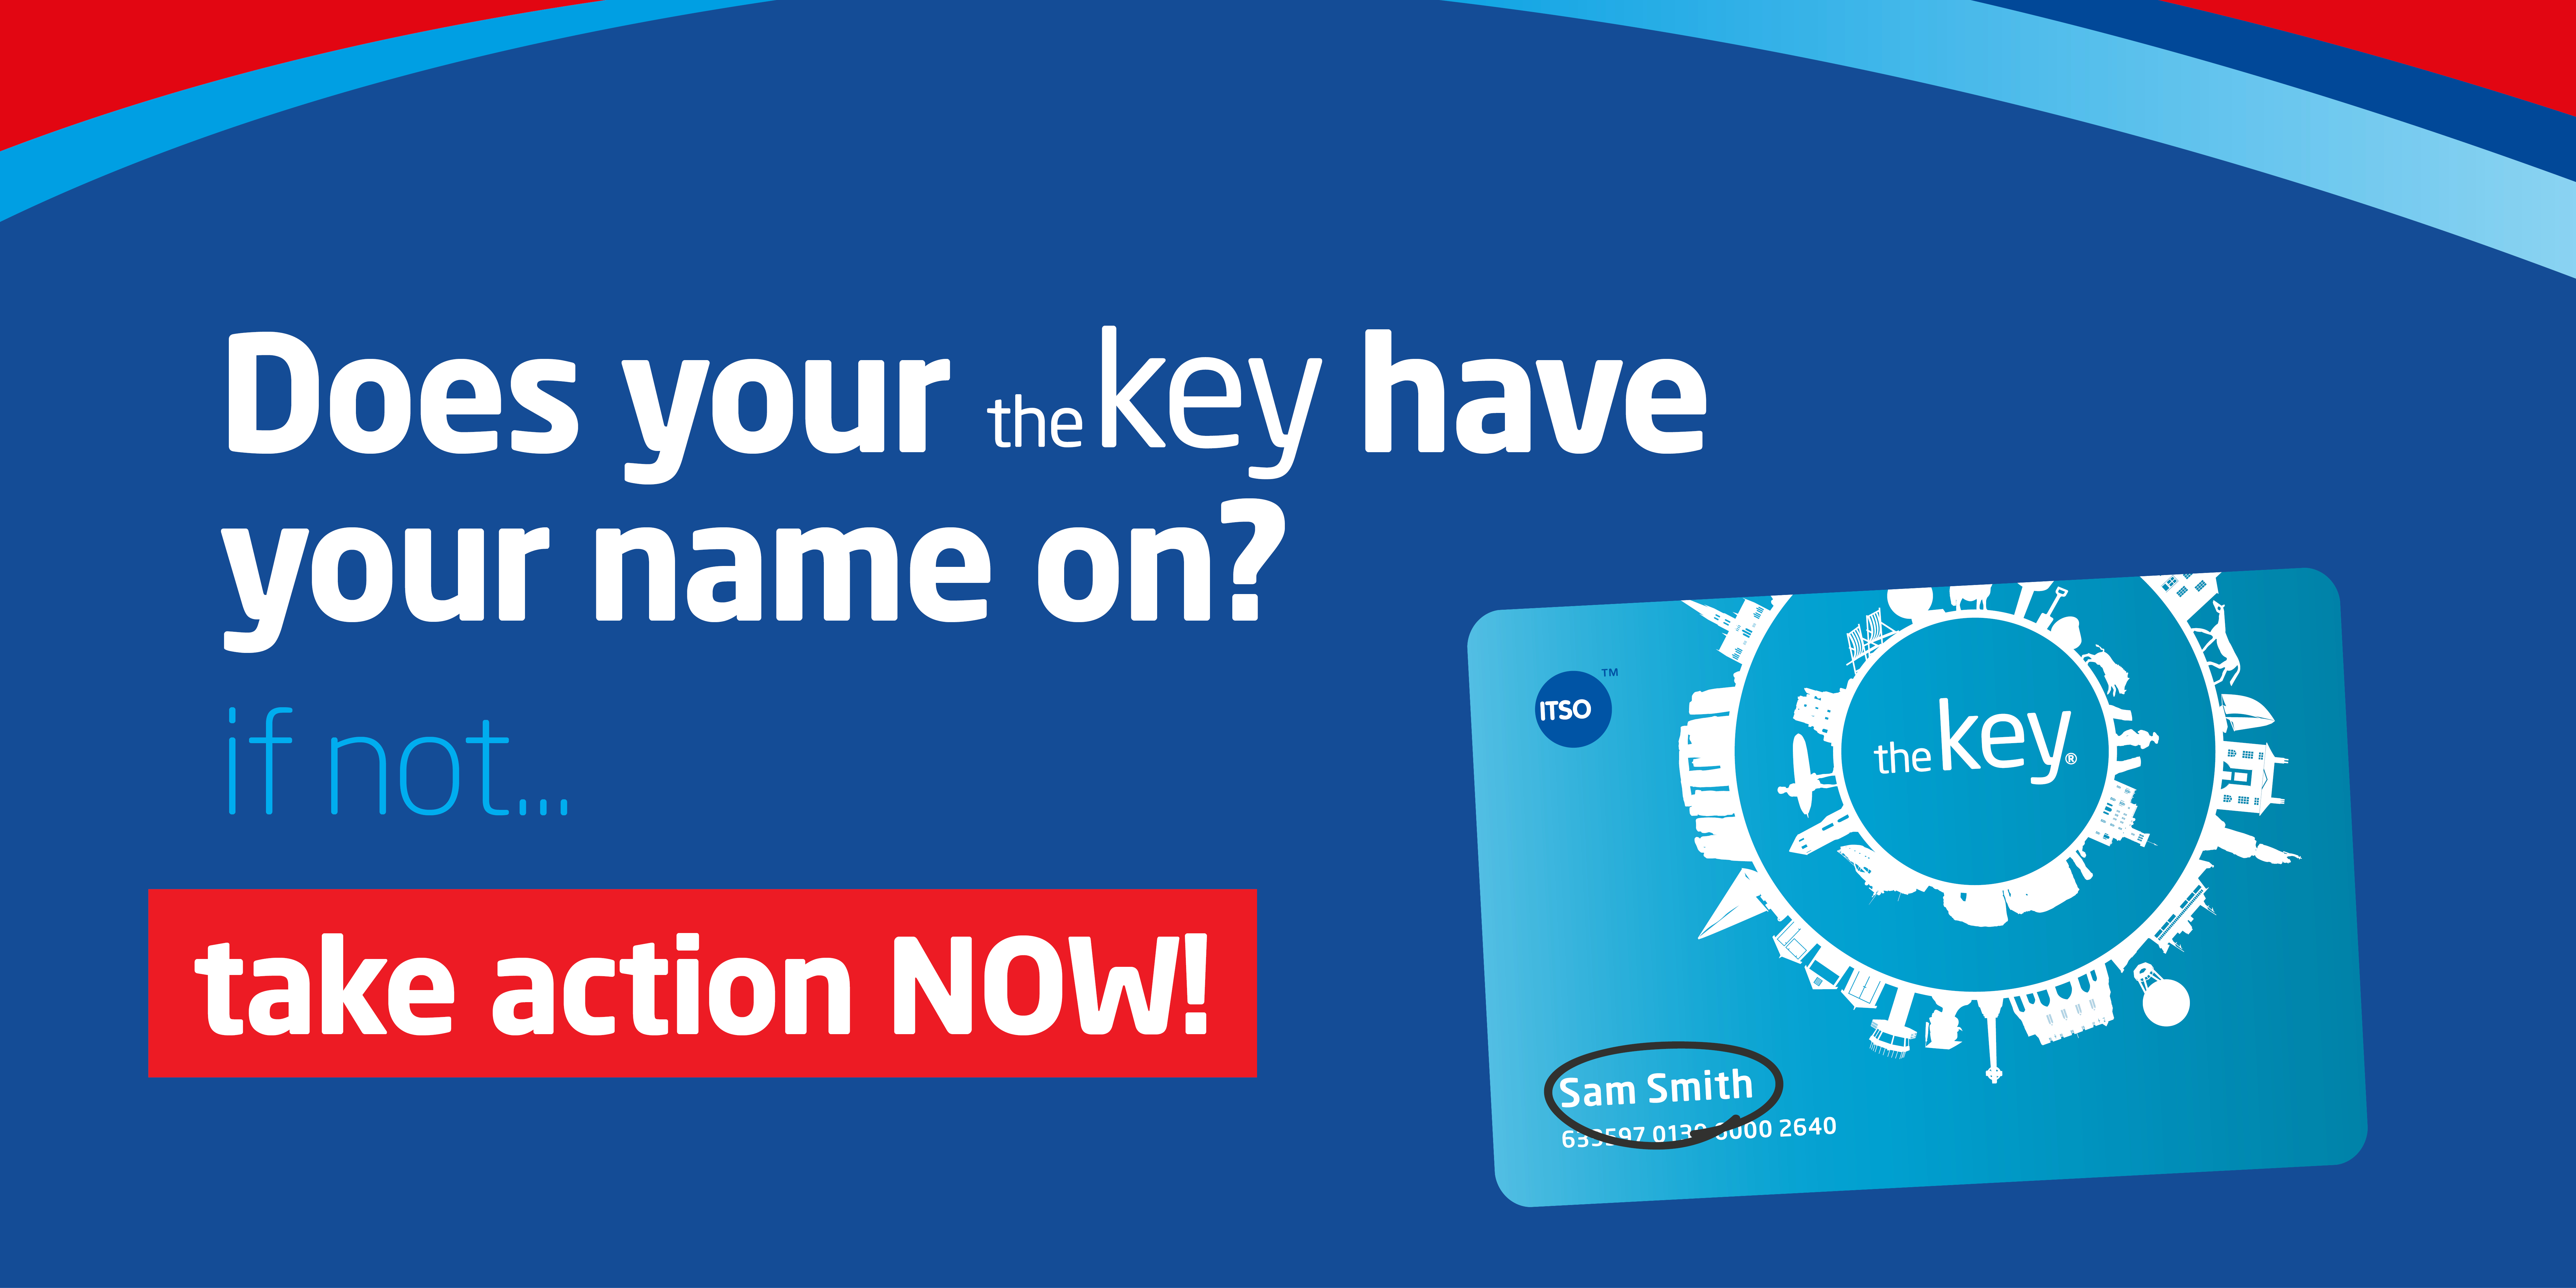 Users of our theKey smartcard should be aware that some of our cards will stop working from 12th January 2021. Those affected are cards without the customer's name printed on the front of them.  If you have your name printed on your card, you do not need to worry or take any further action.  If you do not have your name printed on your card, you need to take action now!  Here's what you need to do:  Logon to our Key portal and make sure your address details are up to date. If you don't have an account or haven't registered your card yet, please do so today. You can register your existing card or sign up for a Key cardhere.If you can't remember your login details, our Customer Services team will be happy to help; you can call them on 01202 678100 or visit our travel shop. In December, we will automatically send you a new Key card to your registered address. If you have any active or stored ticket products on your Key card, these will be automatically transferred to your new card. Once your new card arrives, please destroy your old card immediately and begin using your new card. If you don't receive your new card by 12th December, please contact us as we are keen to ensure you don't experience any disruption to your travel.Your card needs to be replaced before 12th January to continue to travel uninterrupted.  We apologise for the inconvenience caused, and thank you for you updating your details with us.